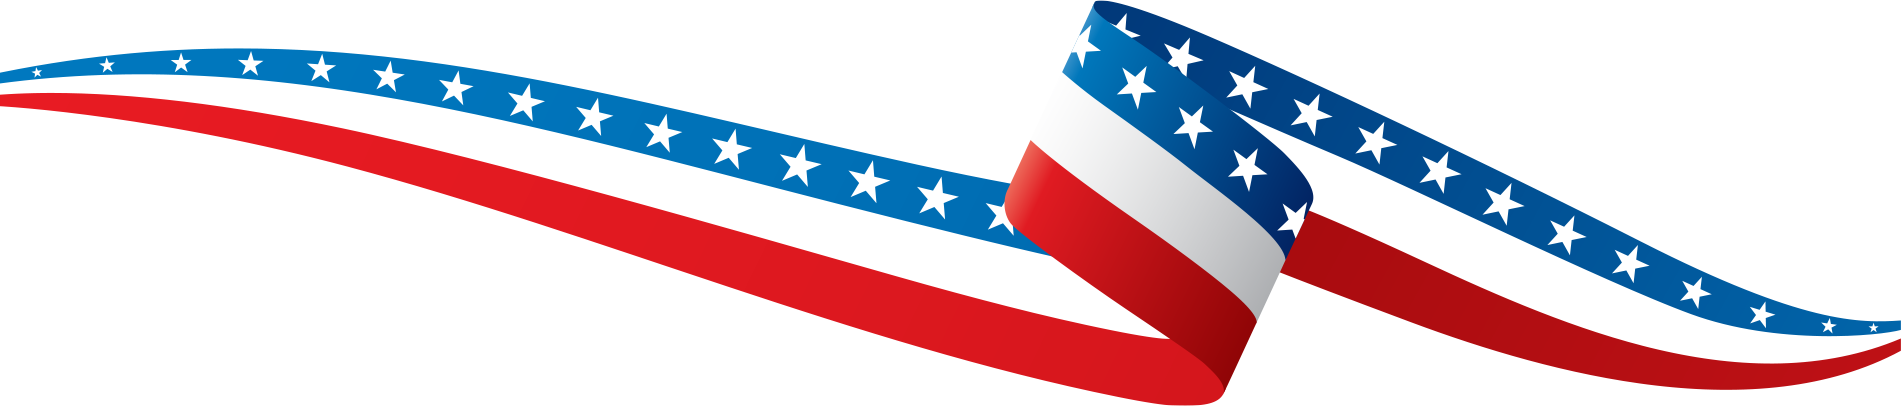 Header American flag background